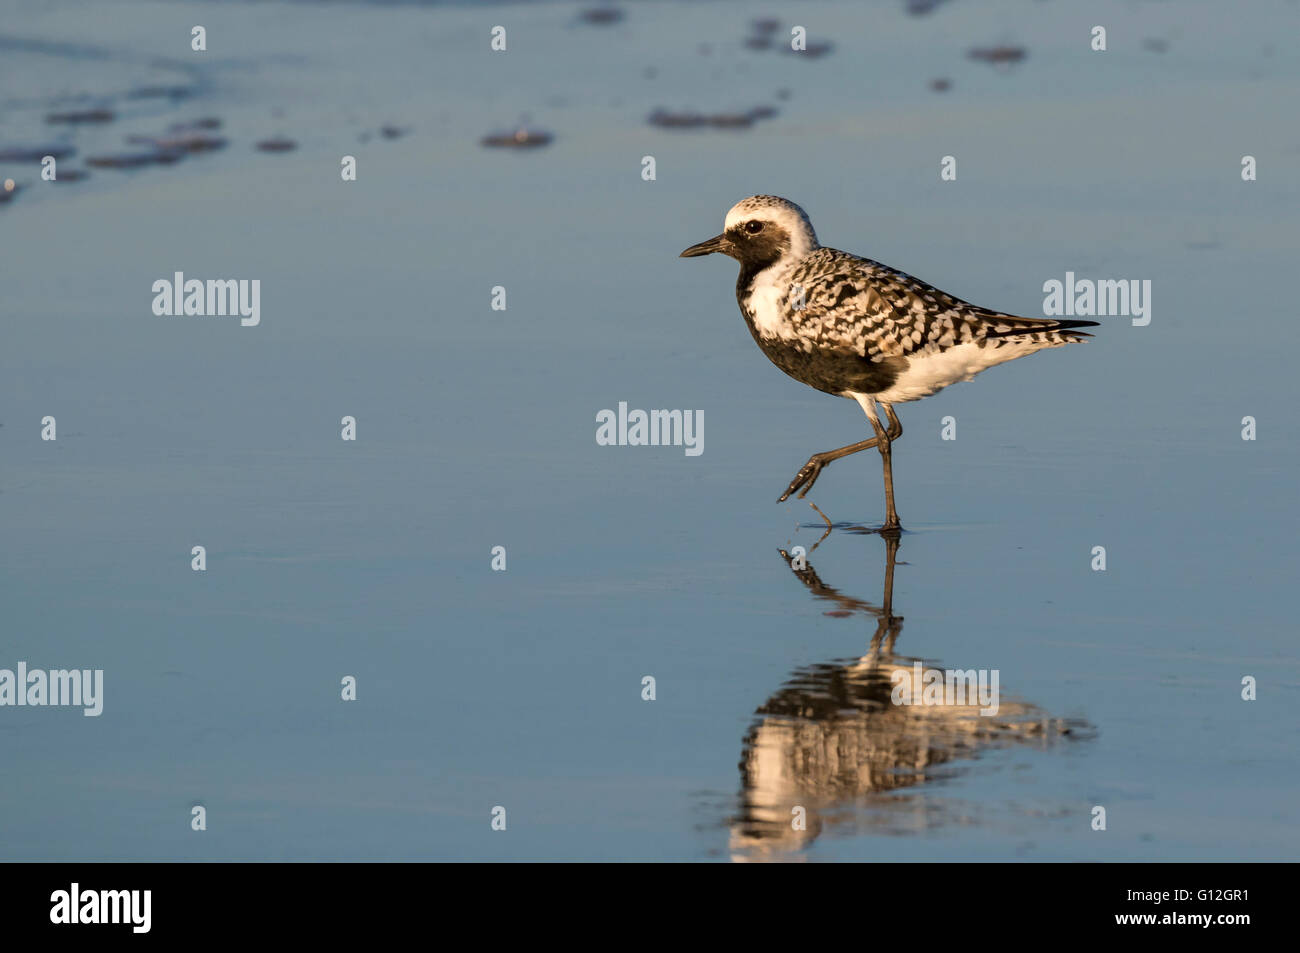 Black-bellied, or grey plover (Pluvialis squatarola) in breeding plumage on the ocean beach, Galveston, Texas, USA. - Stock Image